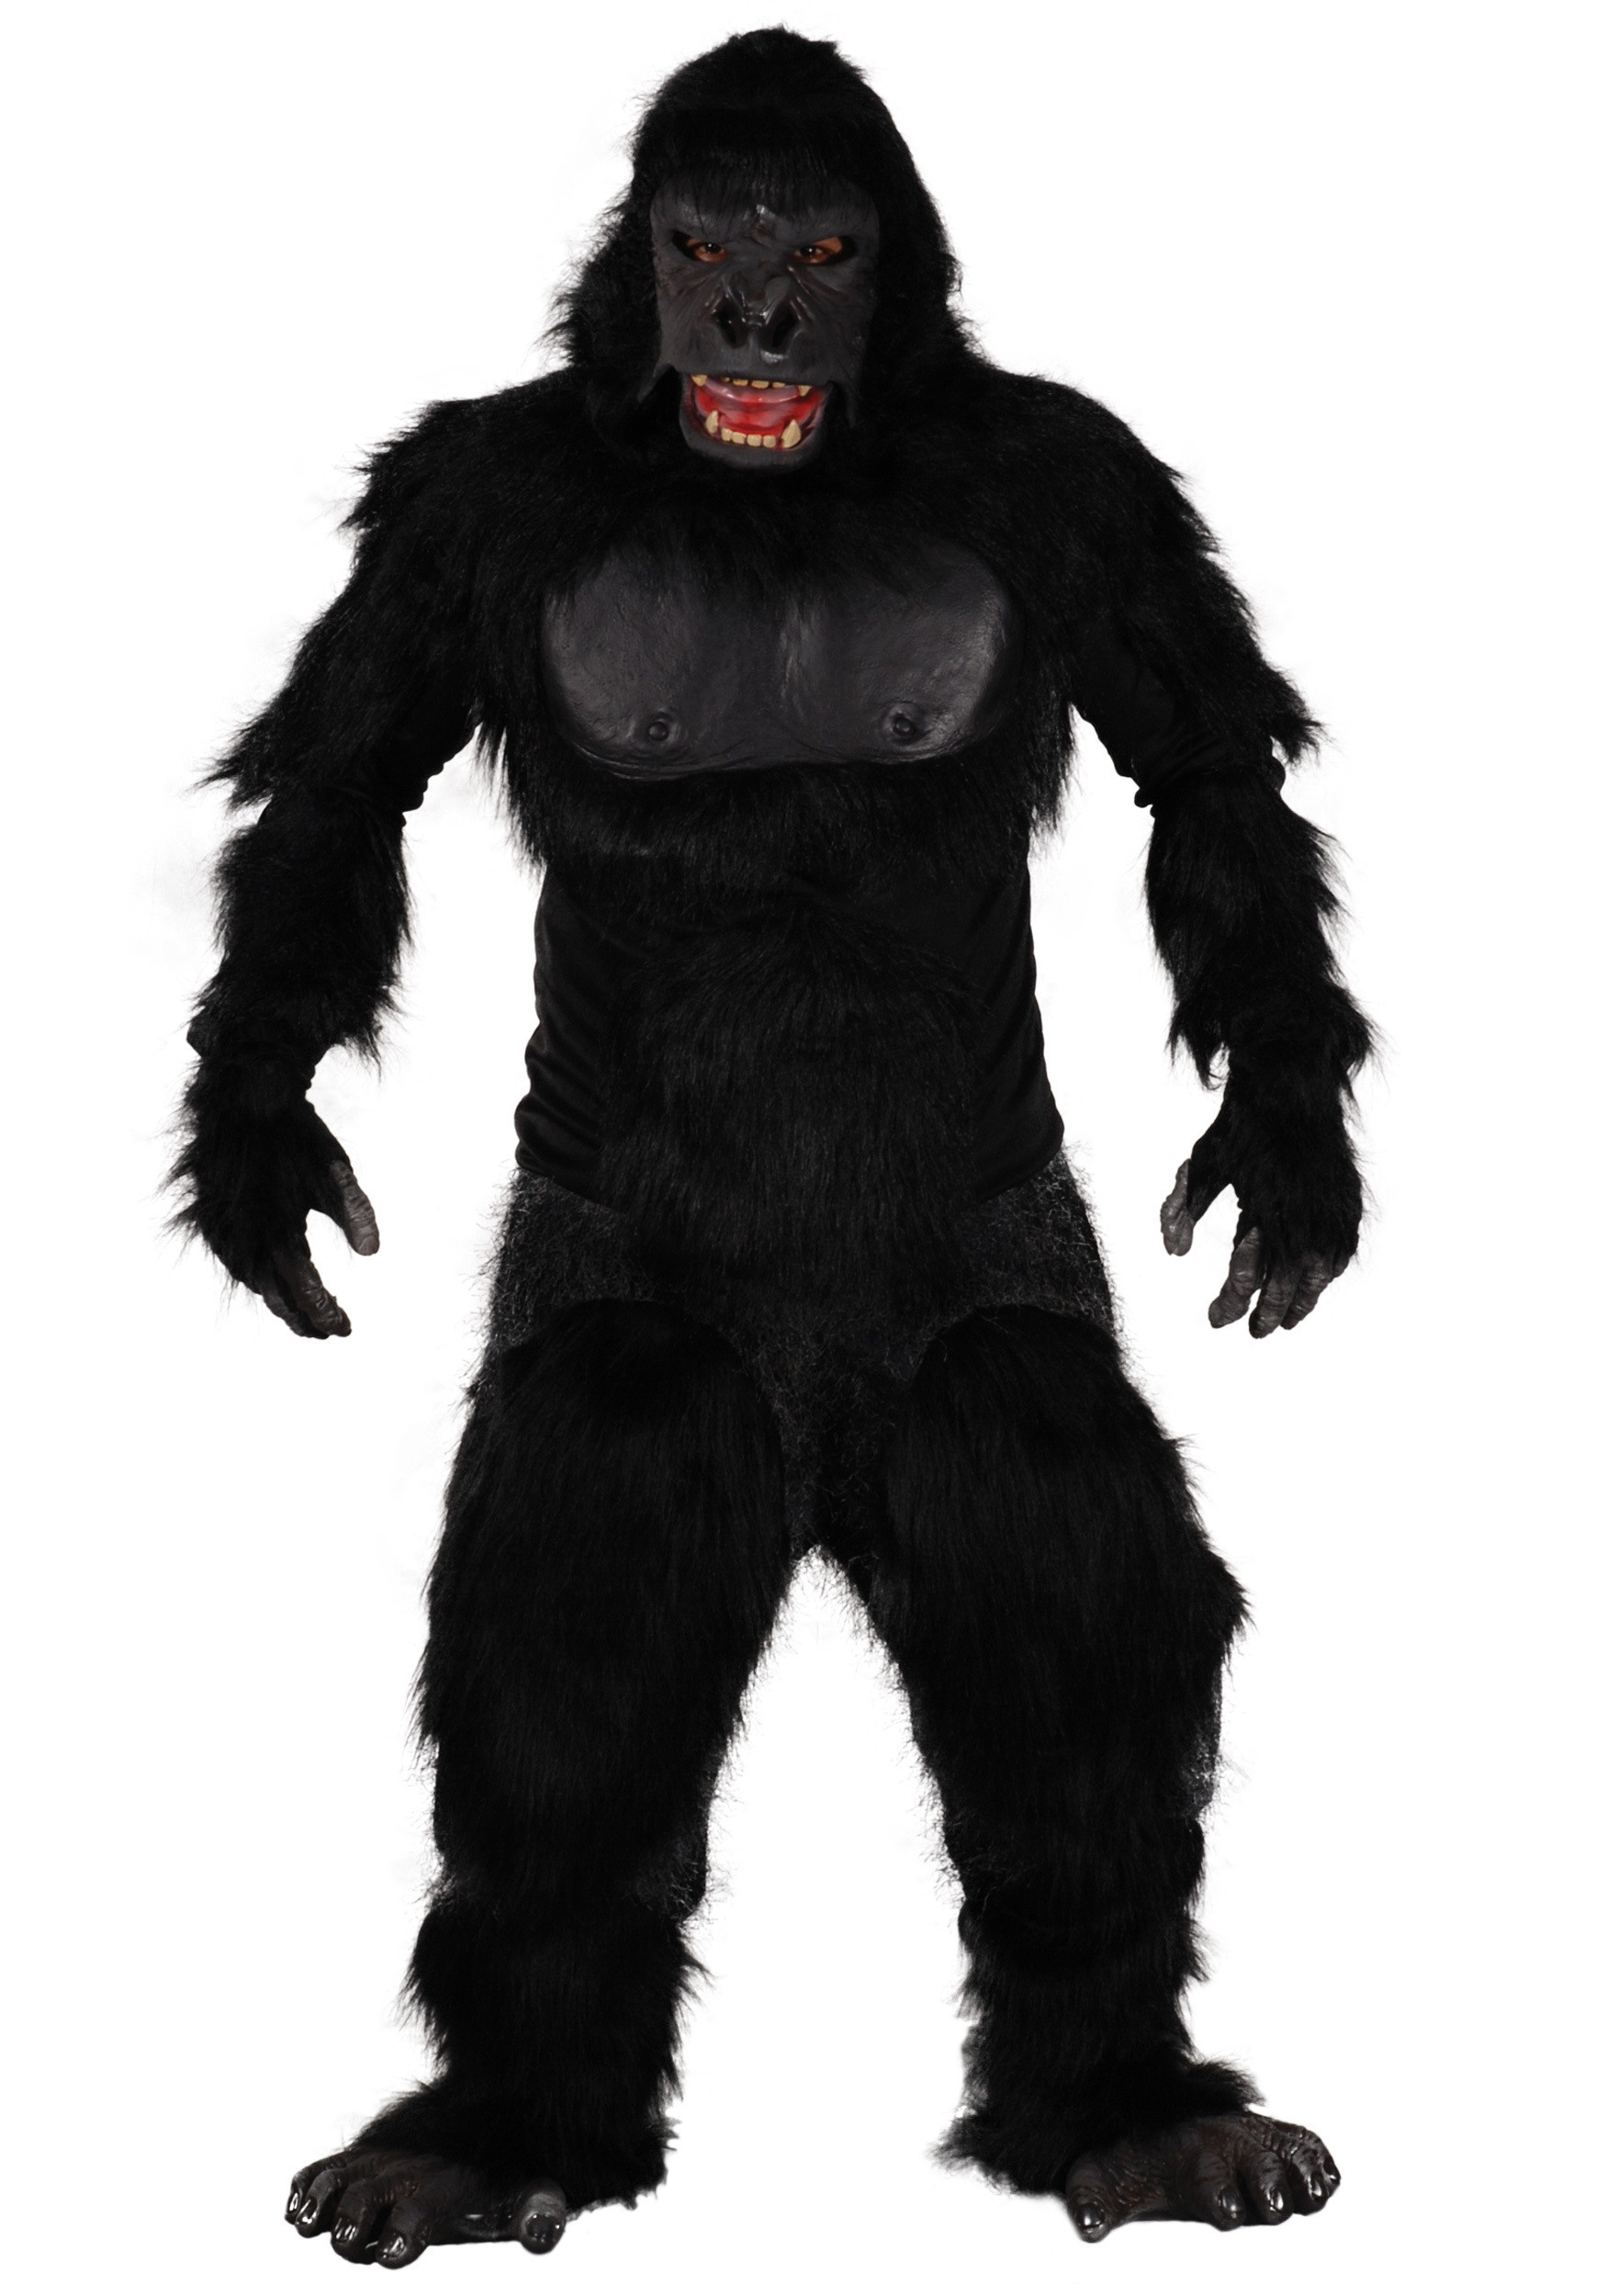 Best ideas about DIY Gorilla Costume . Save or Pin Two Bit Roar Gorilla Costume Now.